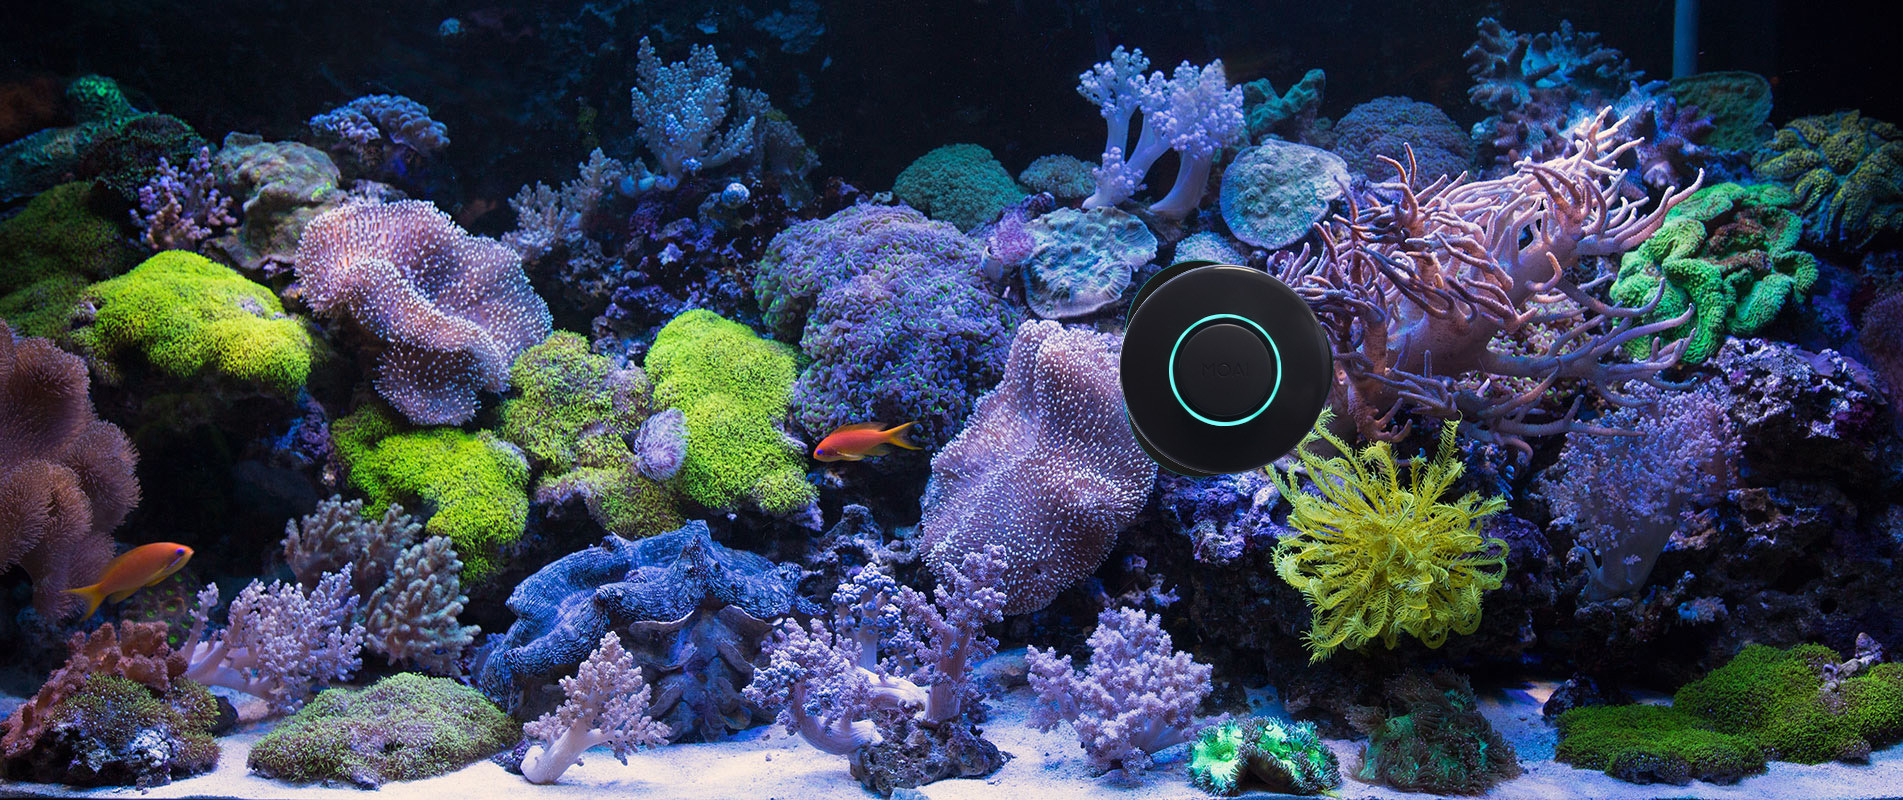 MOAI | Make Aquariums Connected and Clean